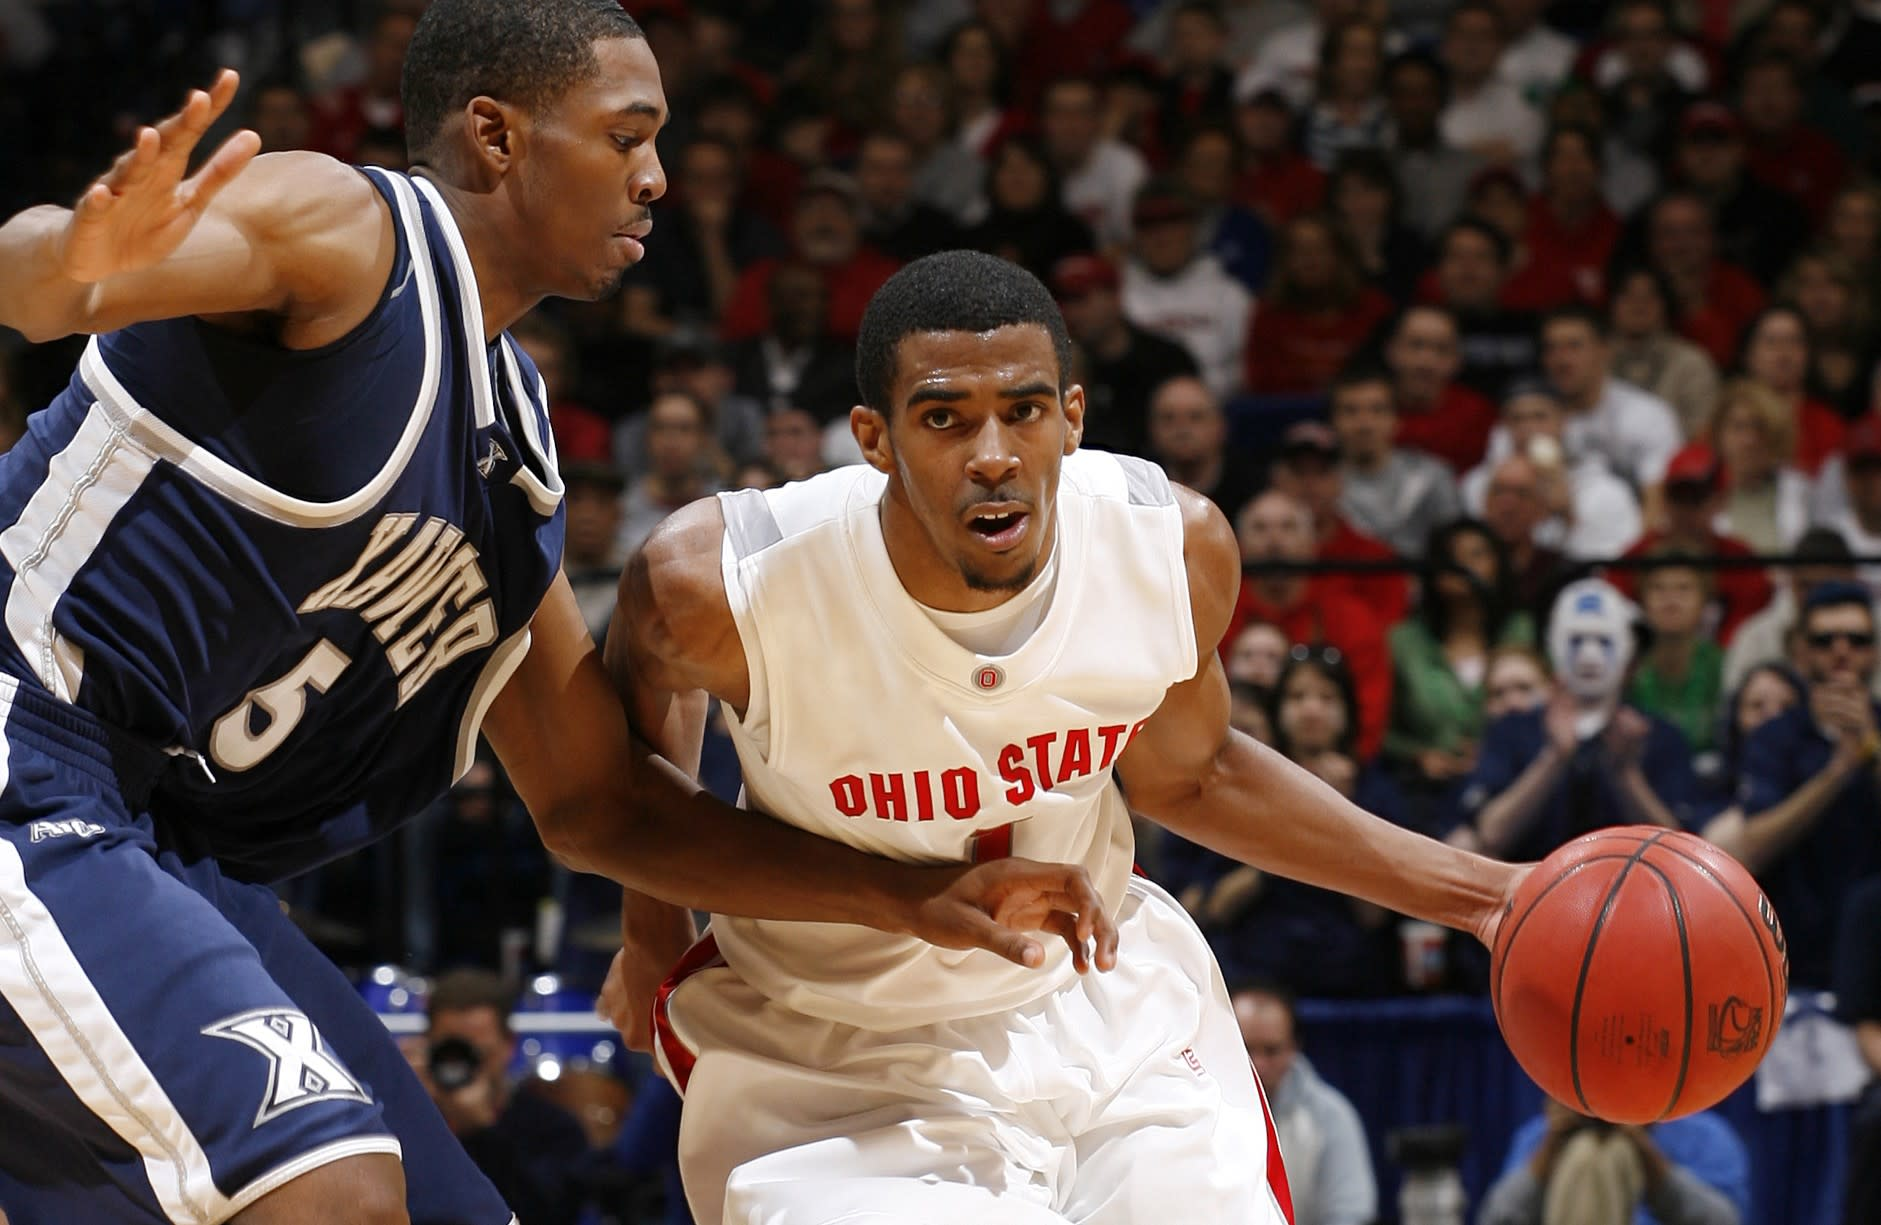 NCAA Second Round: Xavier v Ohio State